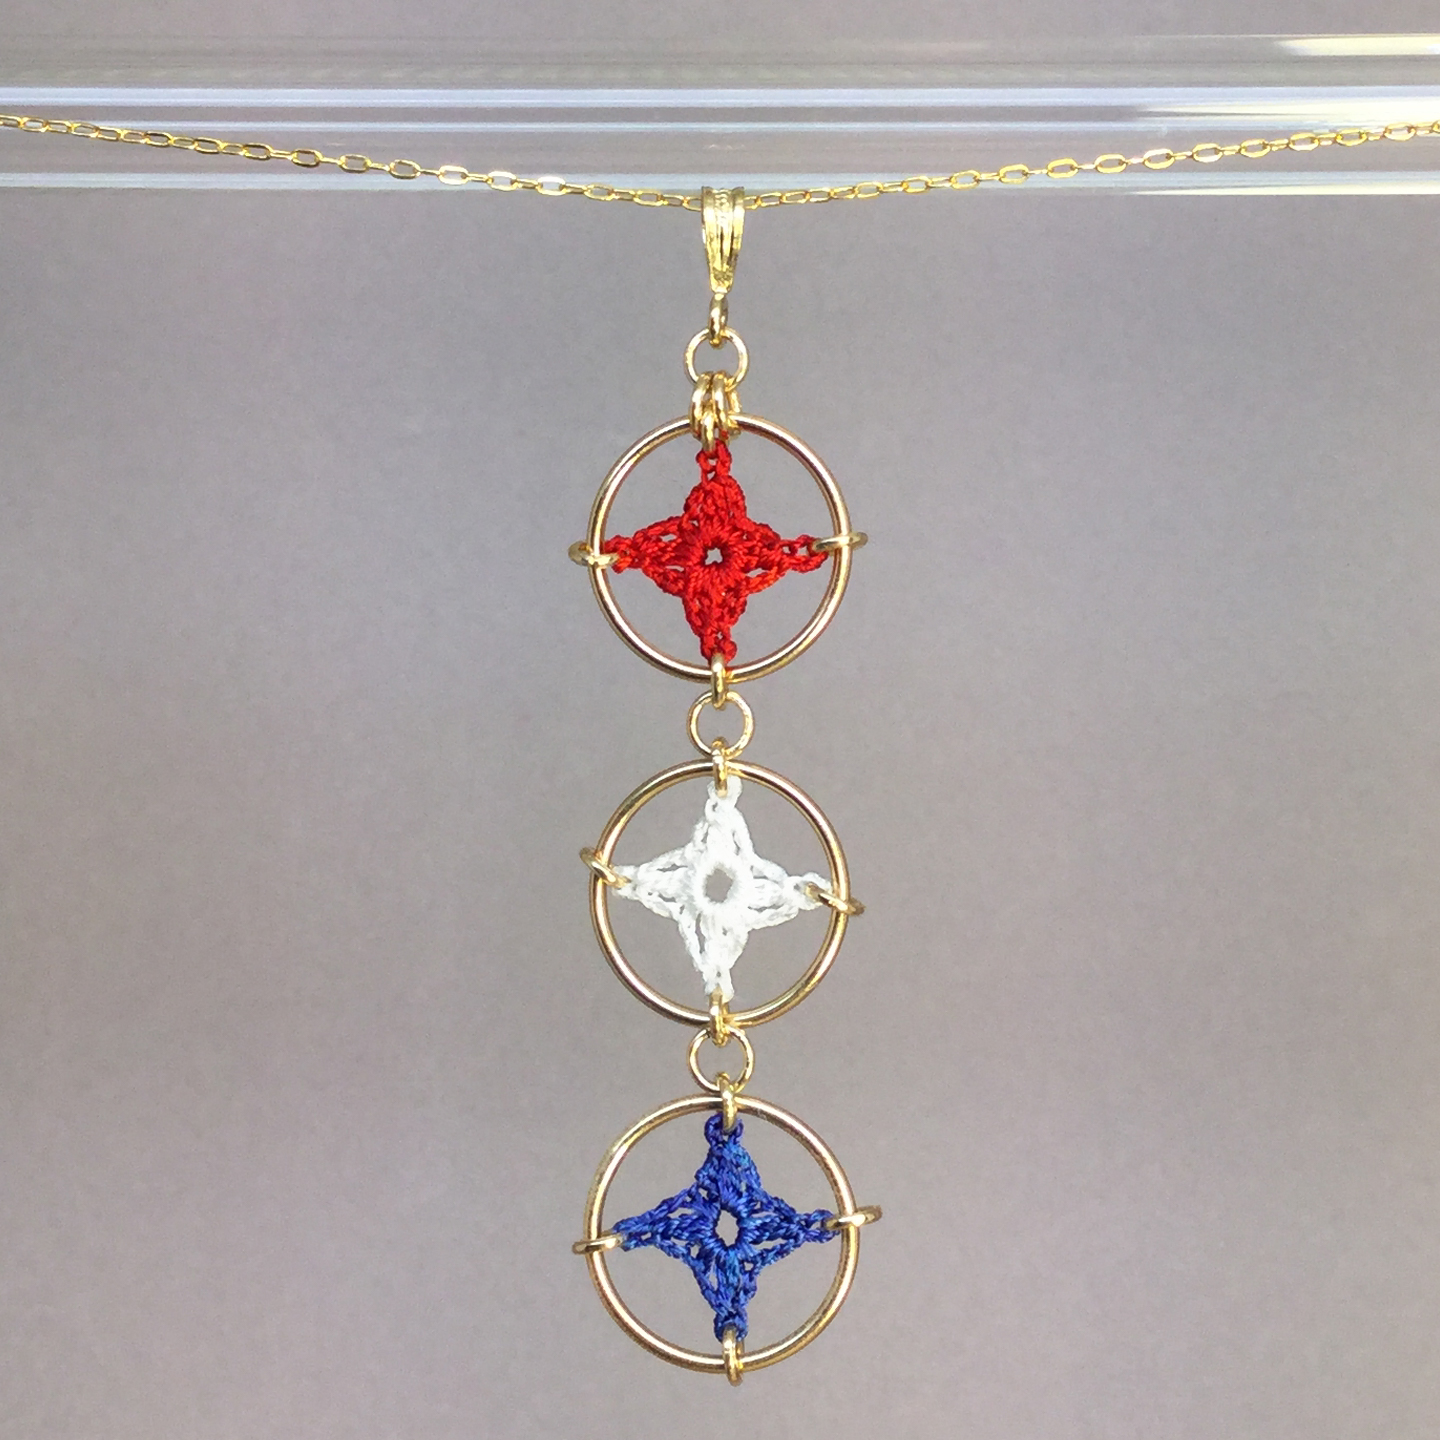 Spangles 3 necklace, gold, red, white and blue thread